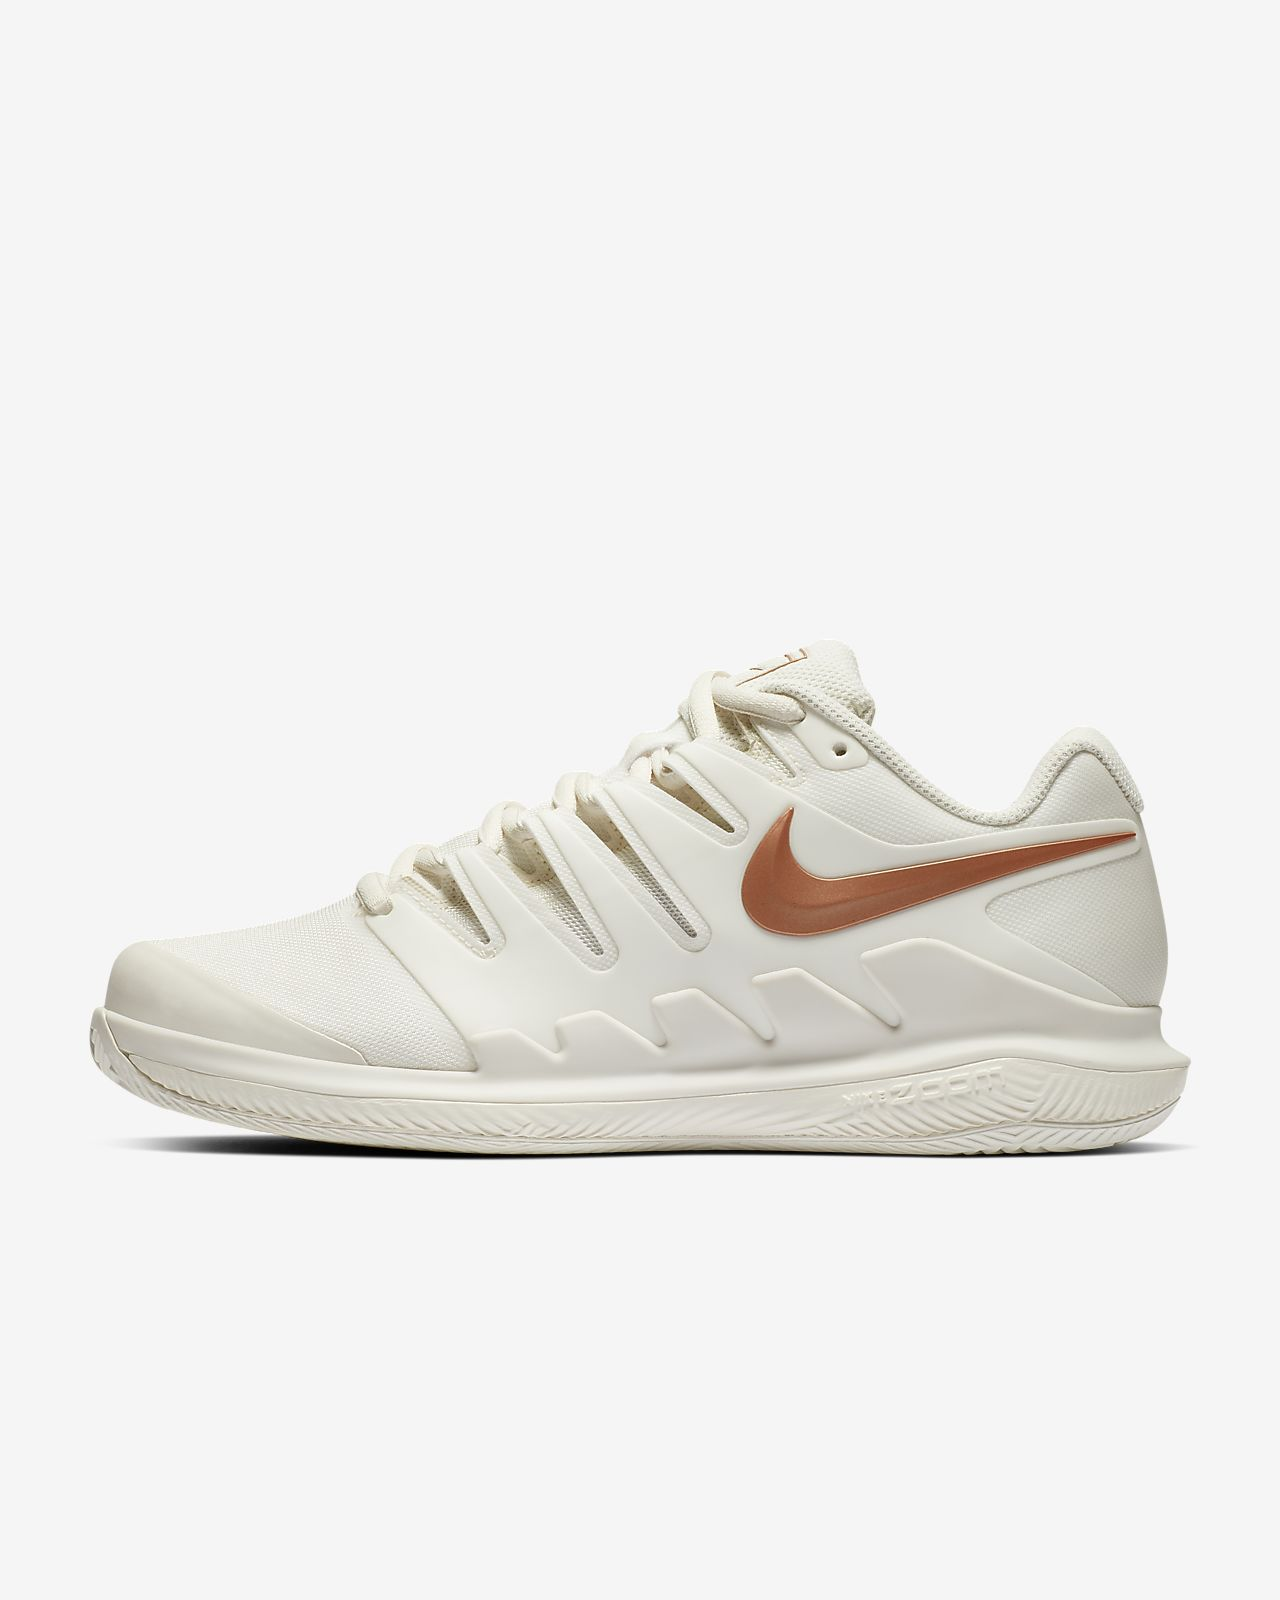 pretty nice 1c22d e98f3 Womens Tennis Shoe. Nike Air Zoom Vapor X Clay